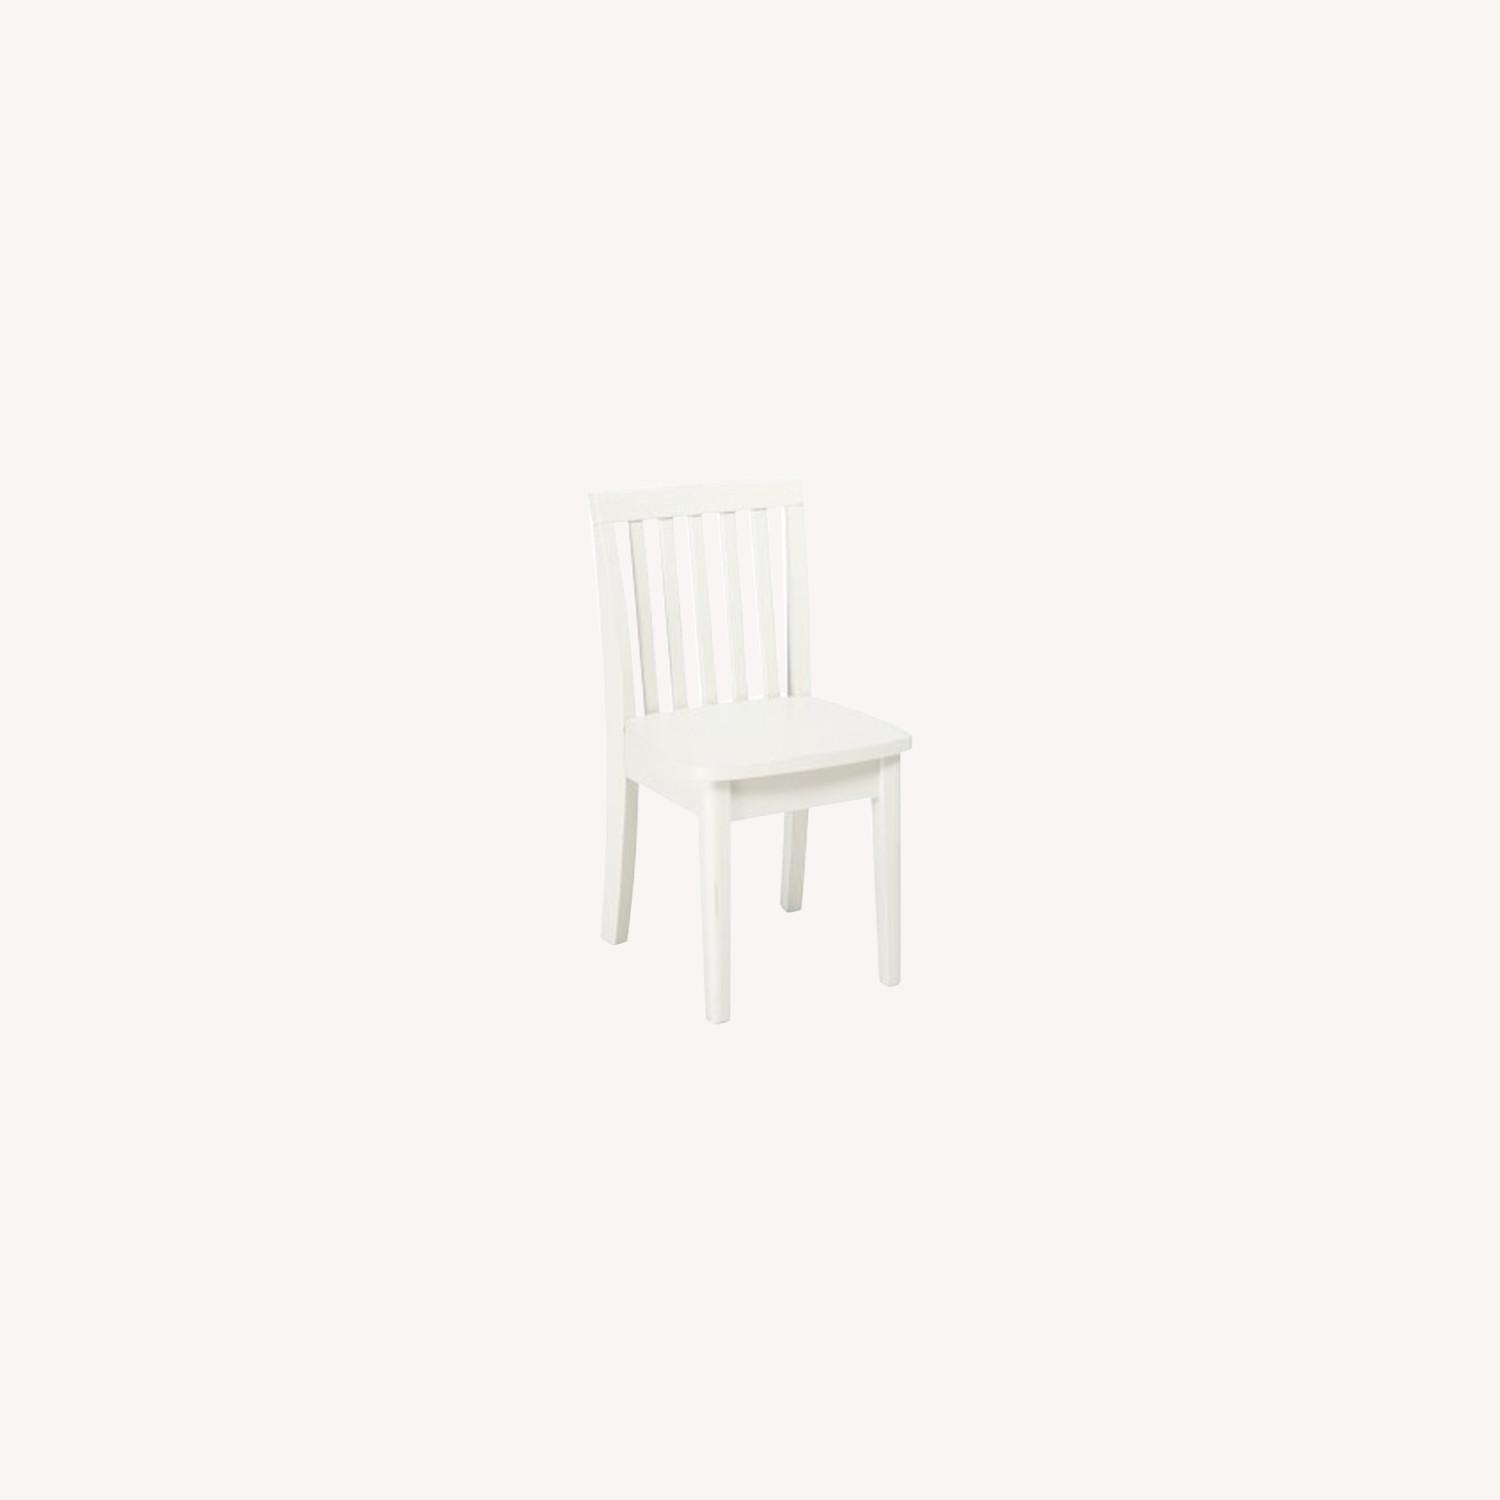 Pottery Barn Kids Desk Chair, Simply White - image-0